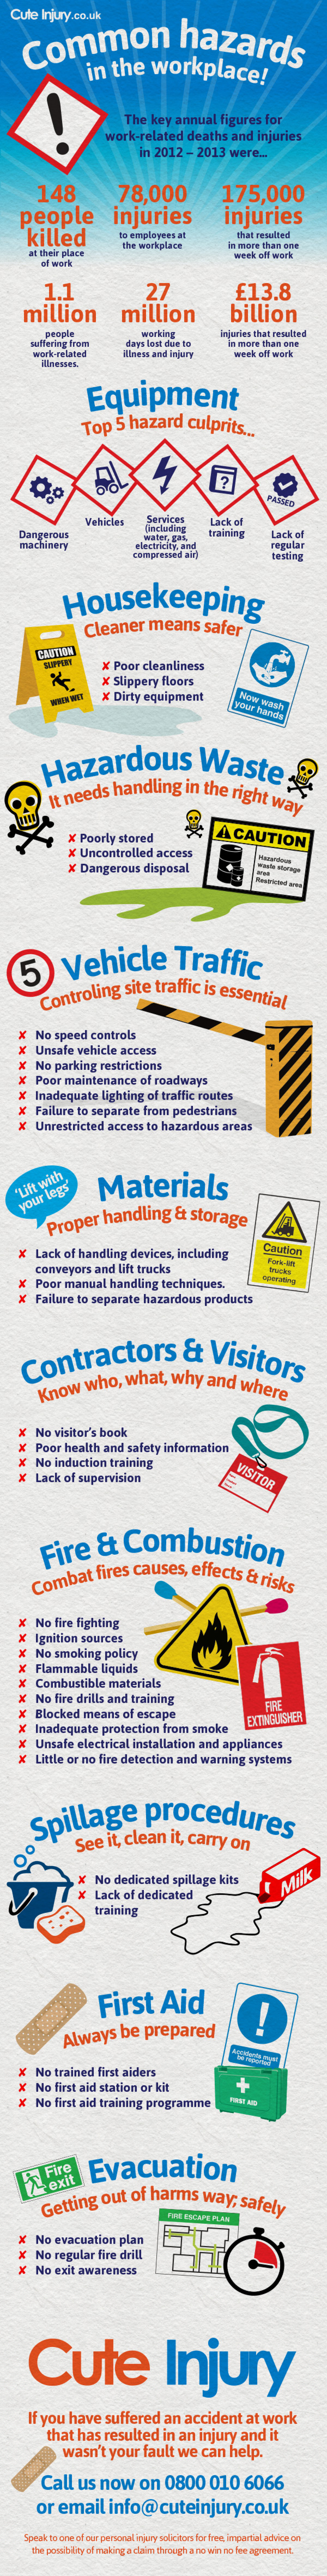 Common hazards in the workplace Infographic